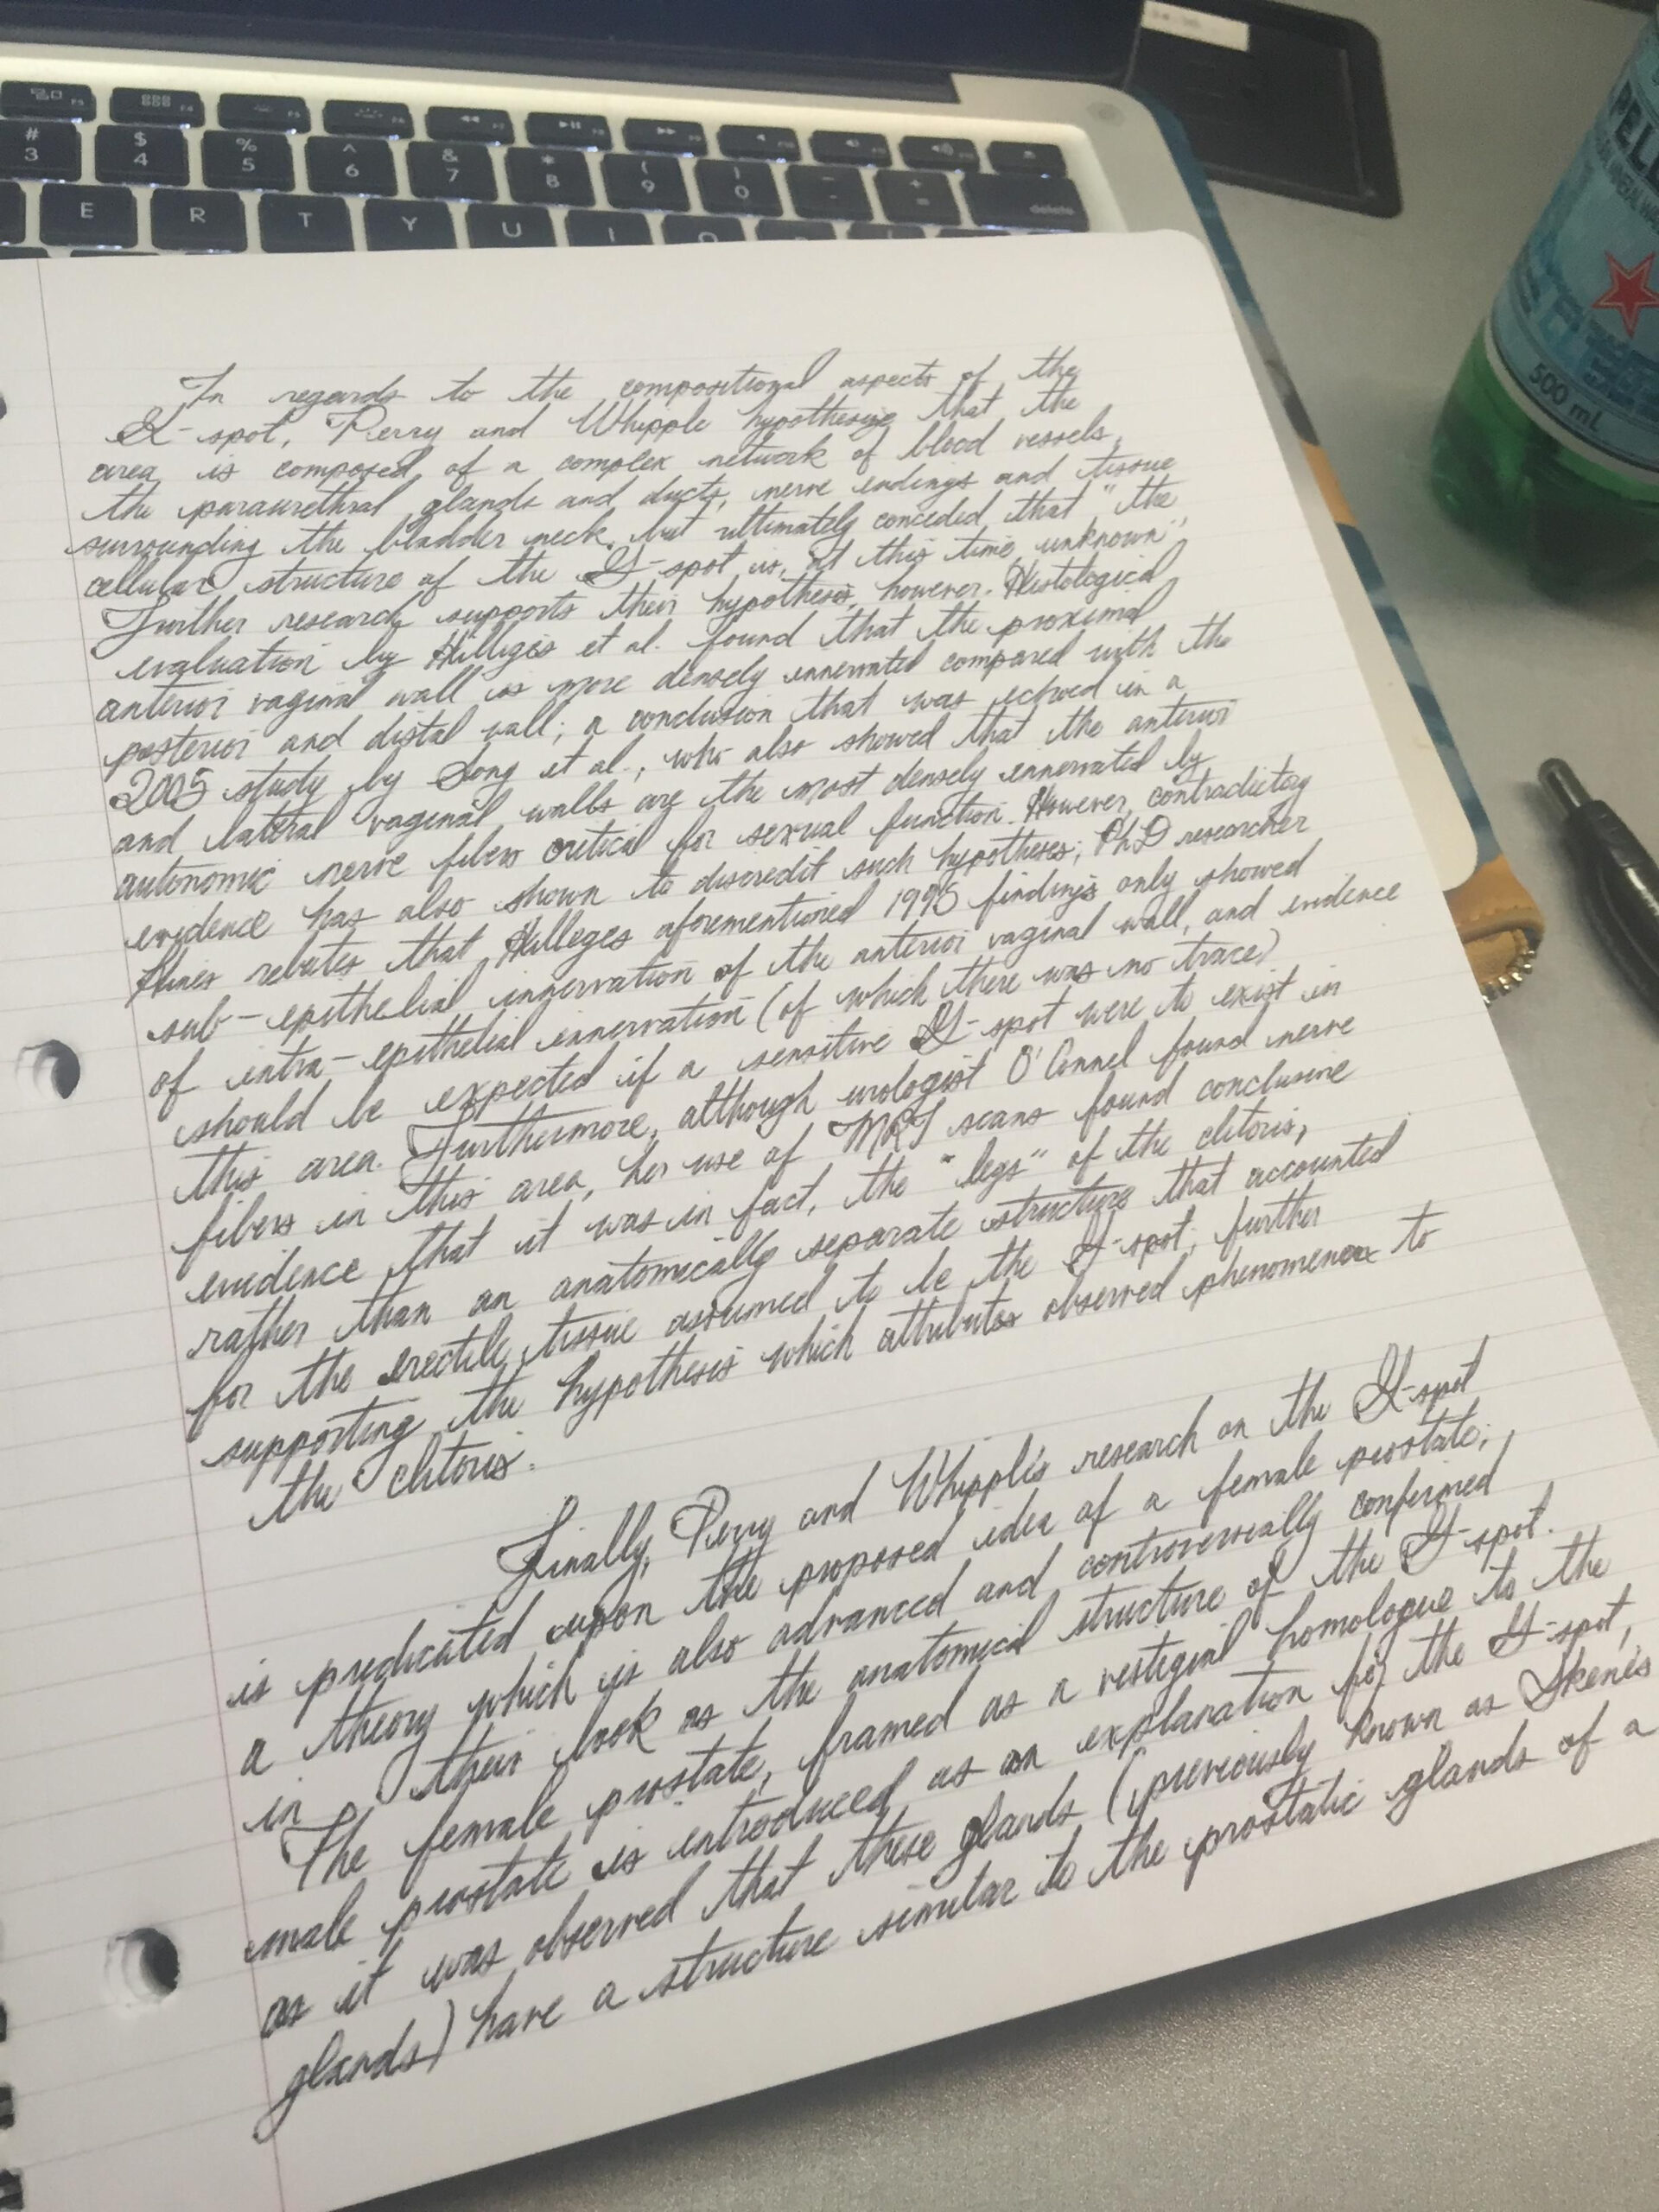 Some People Say My Handwriting Is Illegible, Others Say It's